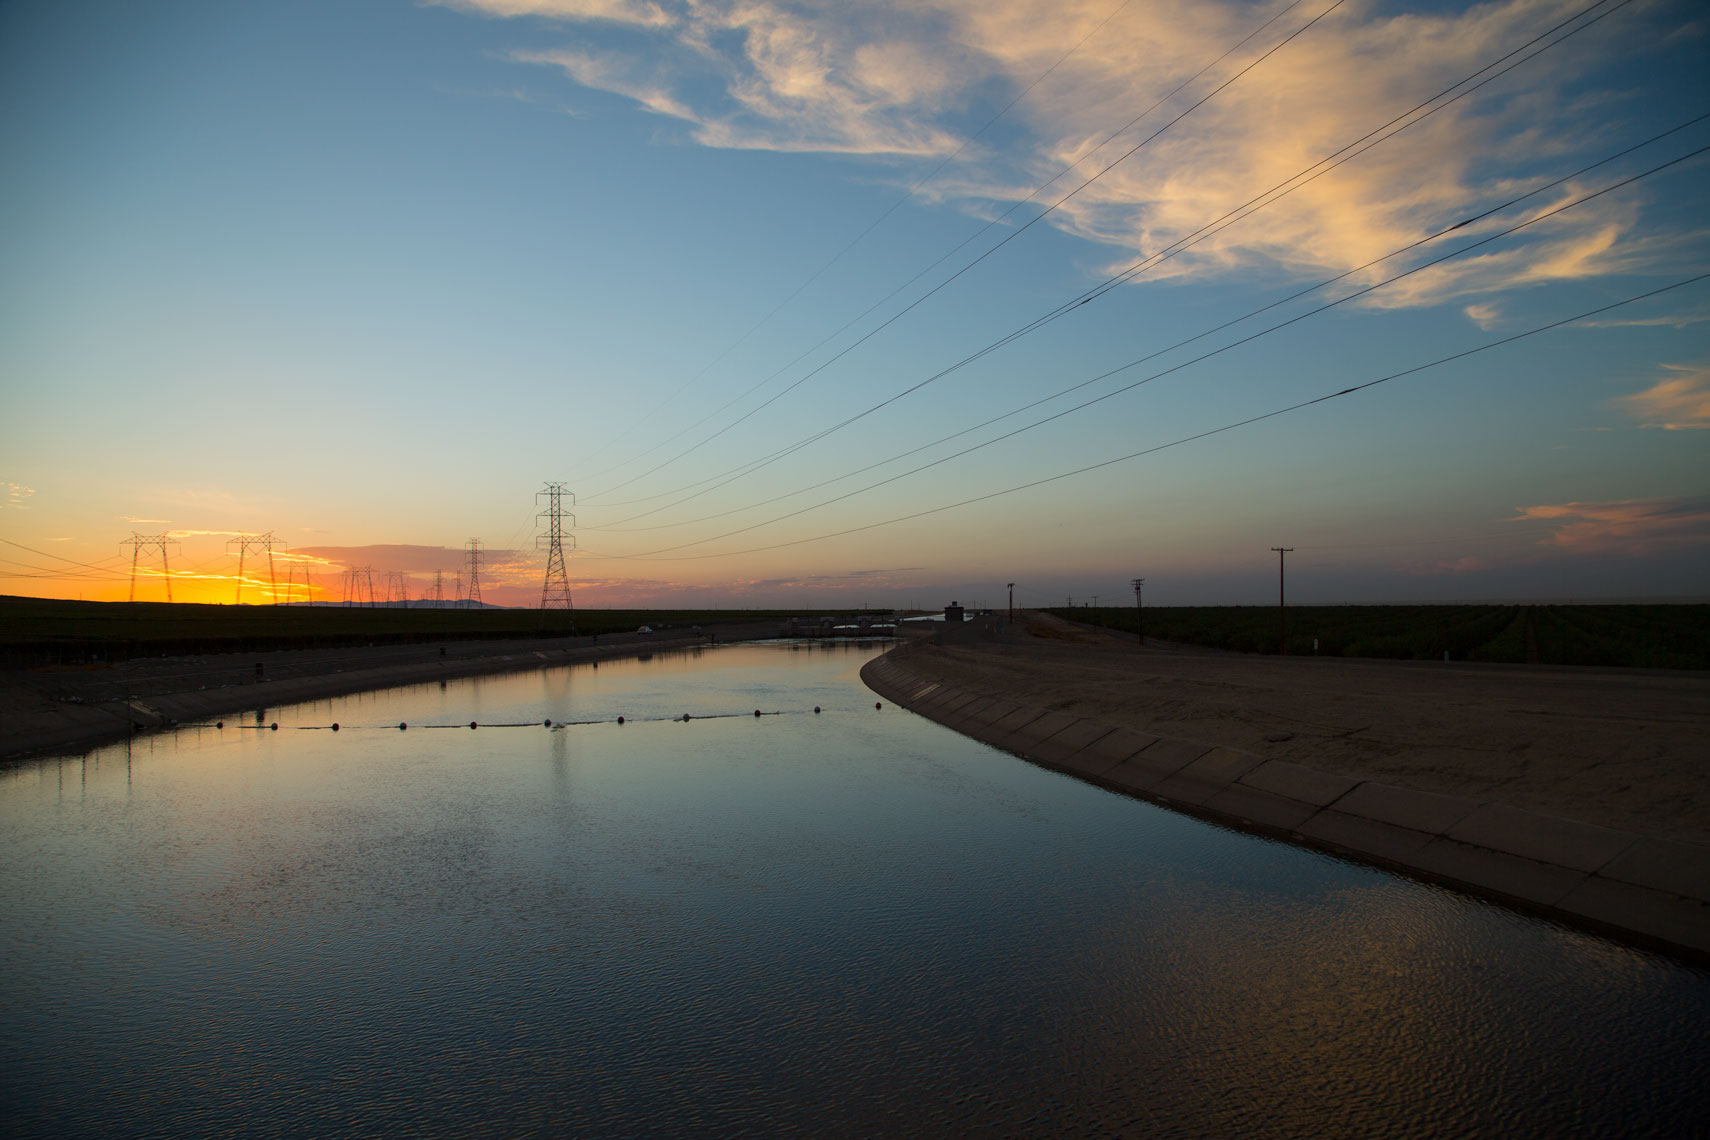 Sunset at the California Aqueduct.